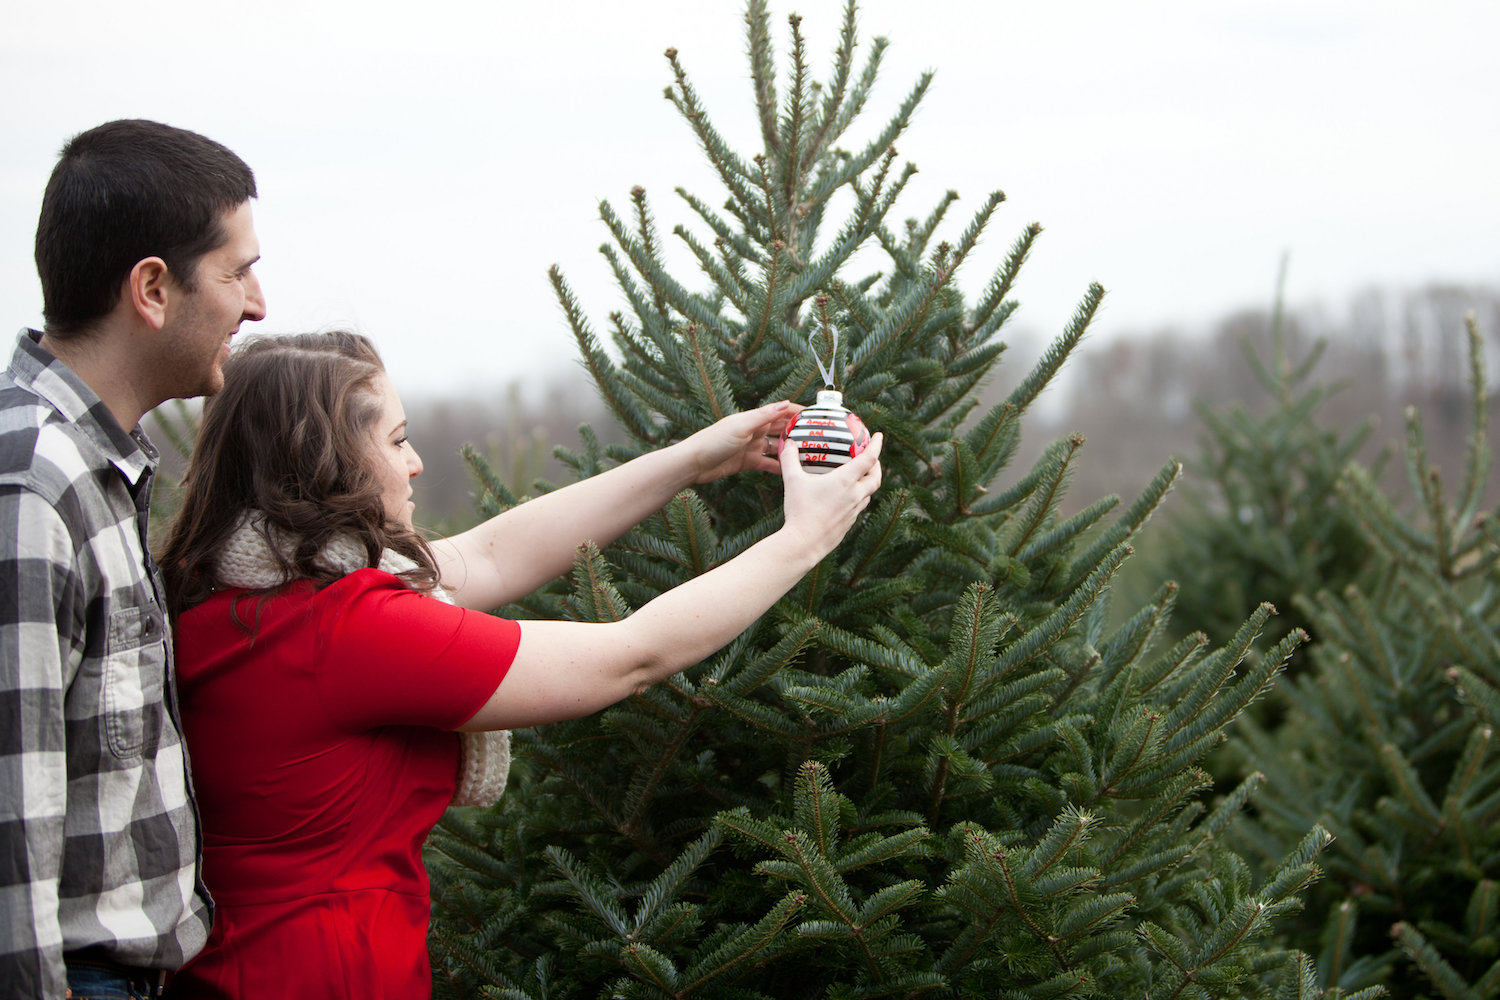 Holiday Ornament Christmas Tree Farm Engagement Shoot Sincerely Pete Events Liz and Ryan Photography